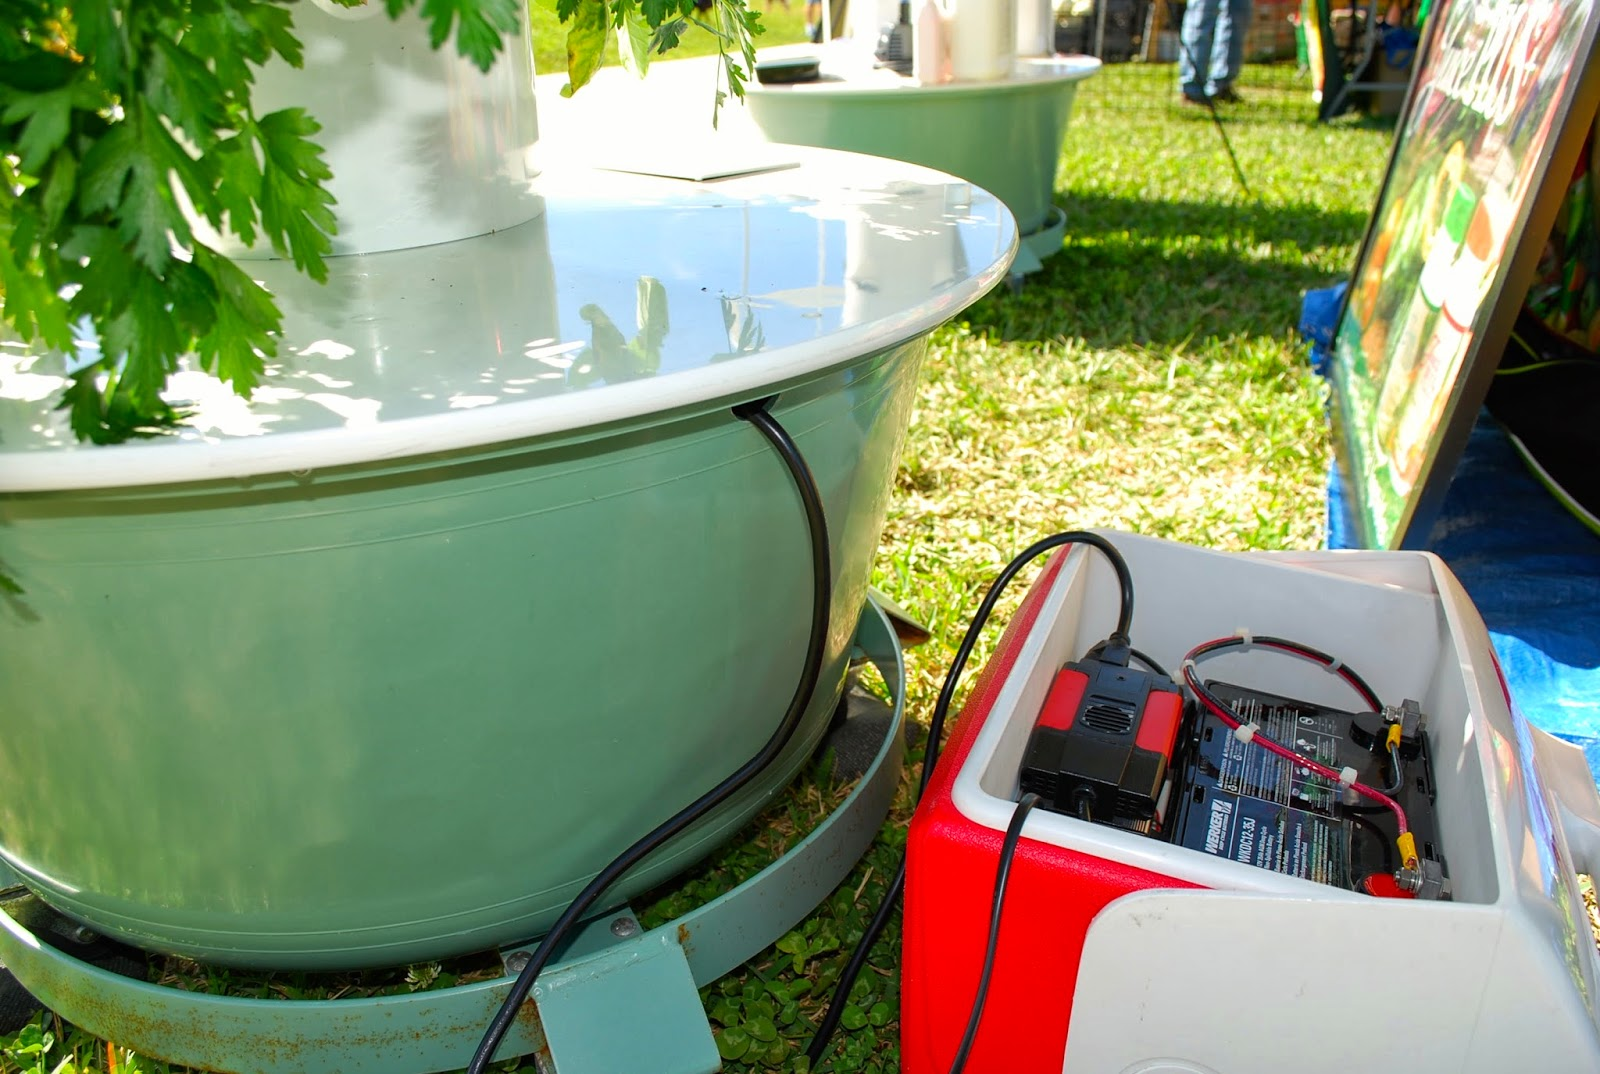 Solar Conversion Kit For Tower Garden By Juice Plus+, Royal Palm Beach  Green Market, Fla. Copyright 2014 By Helen A Lockey